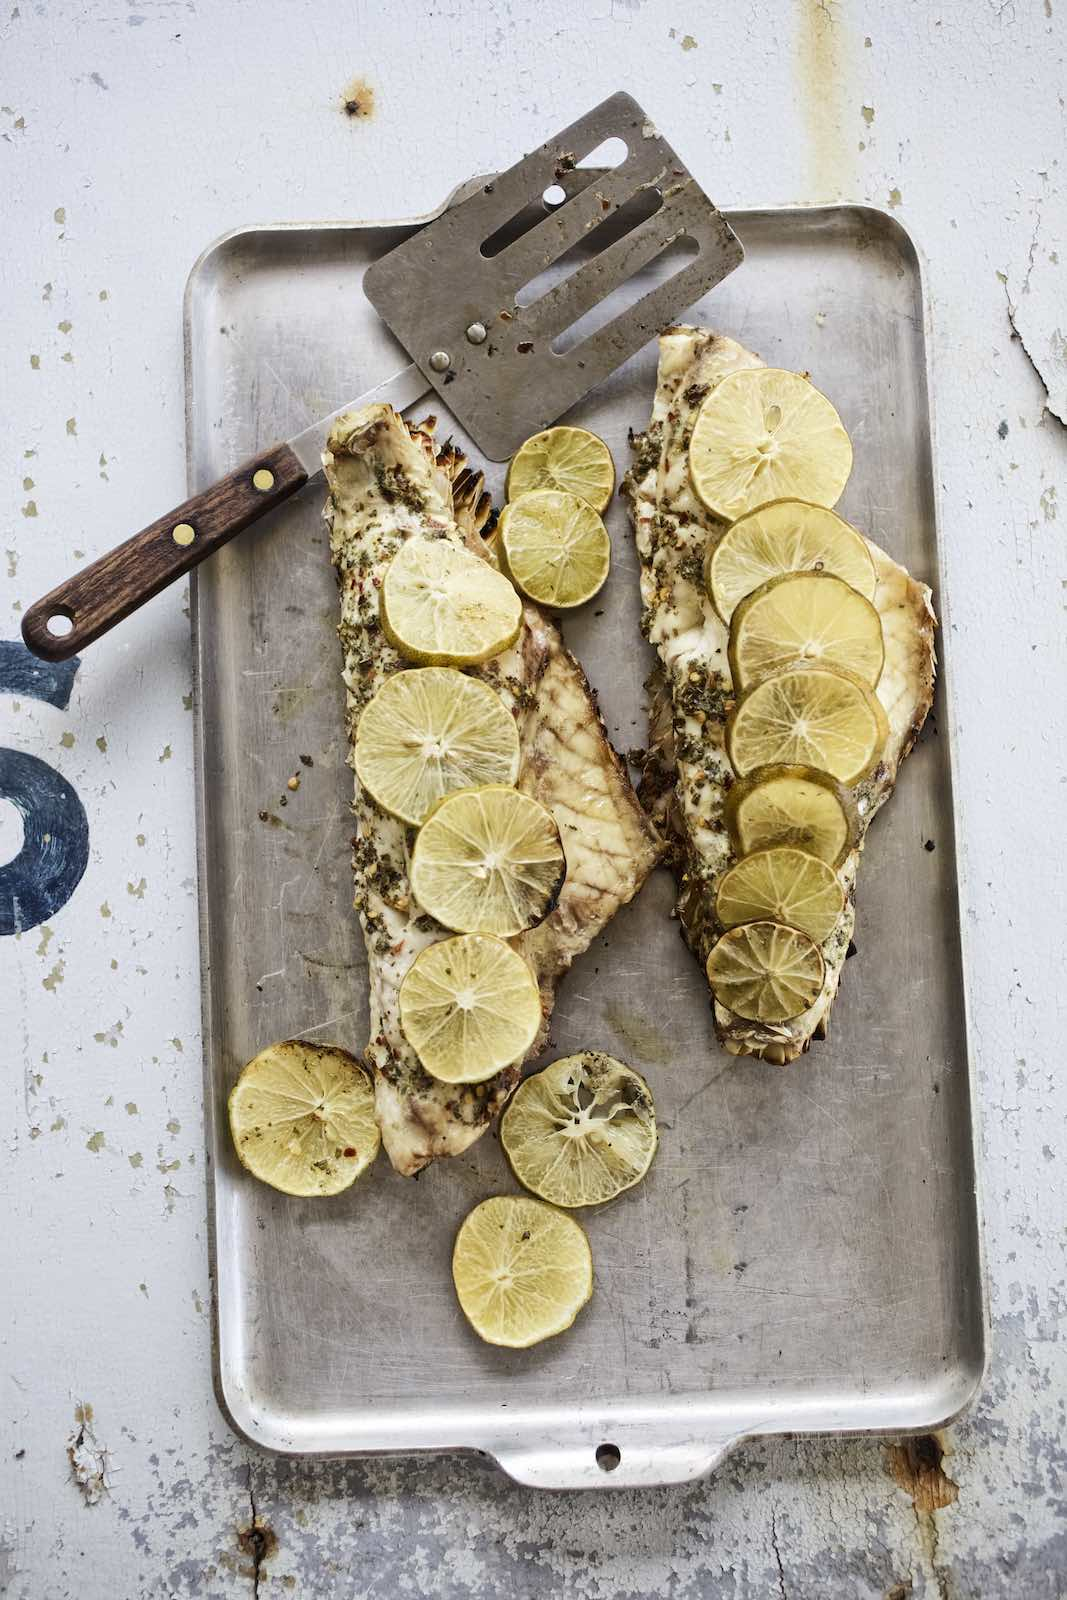 Jody Horton Photography - Grilled fish fillets with sliced lime on a metal sheet pan.